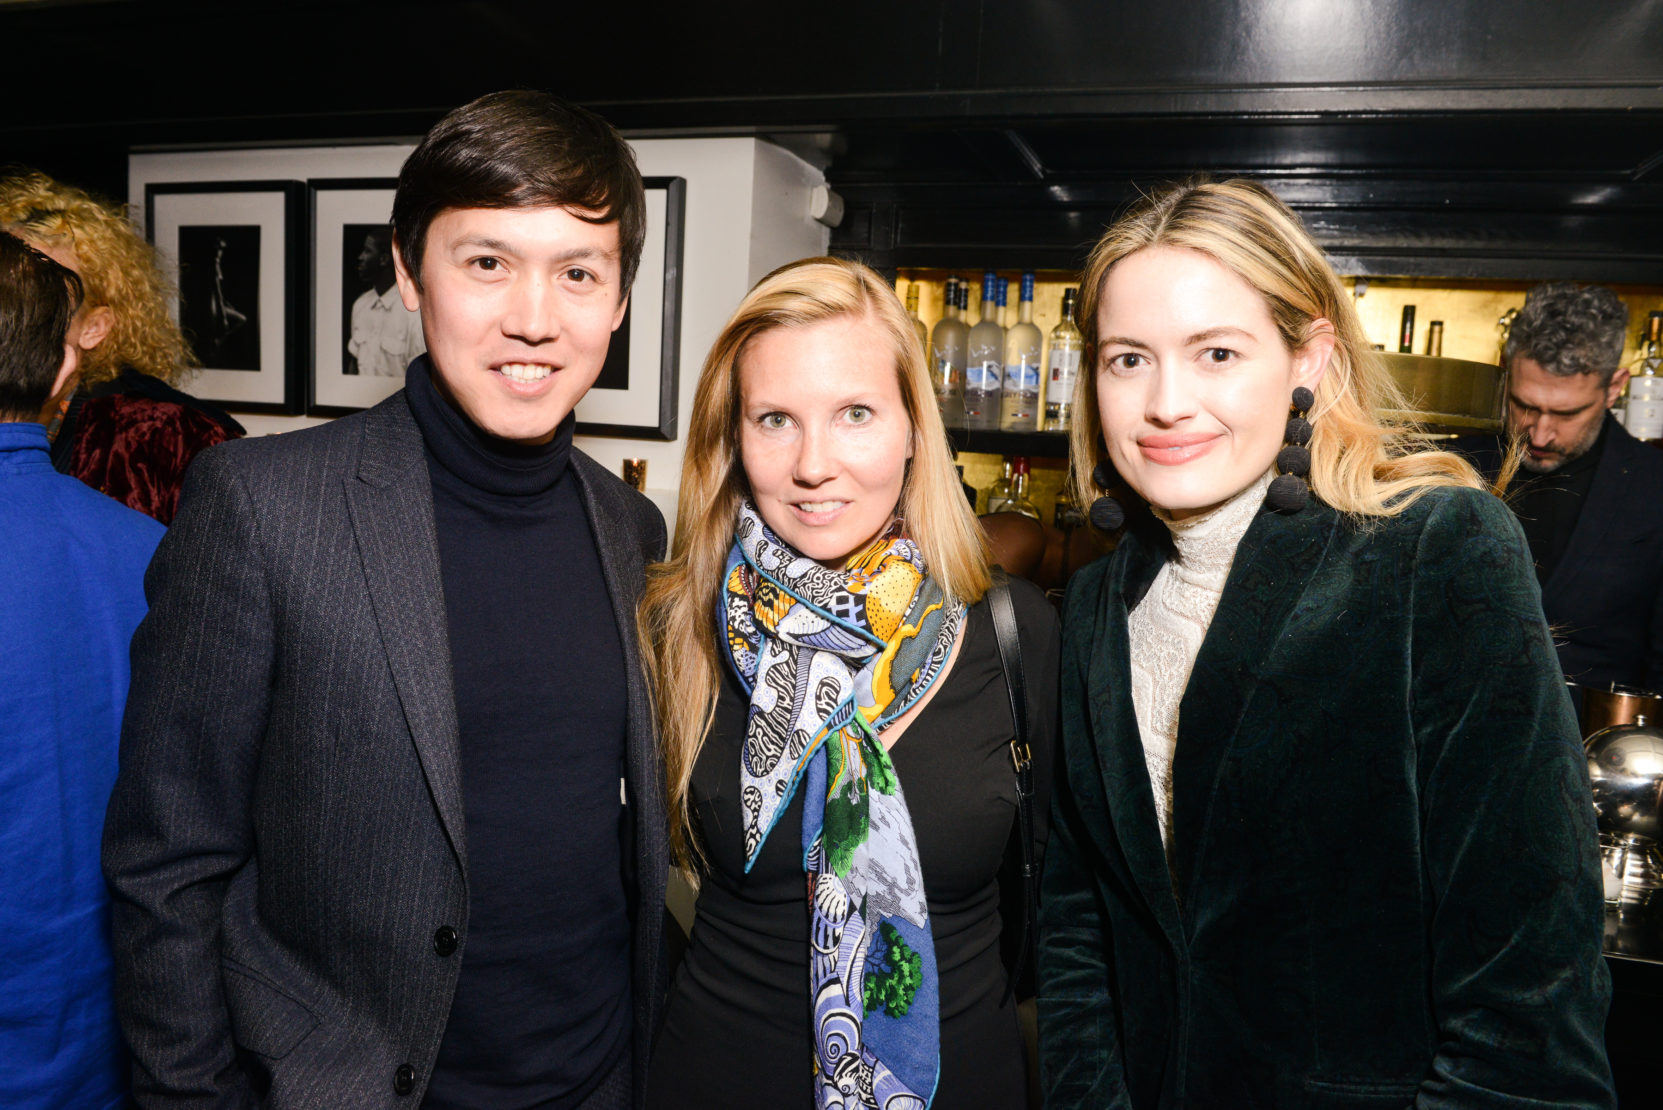 Andrew Heid, Mieke ten Have and Sarah Bray